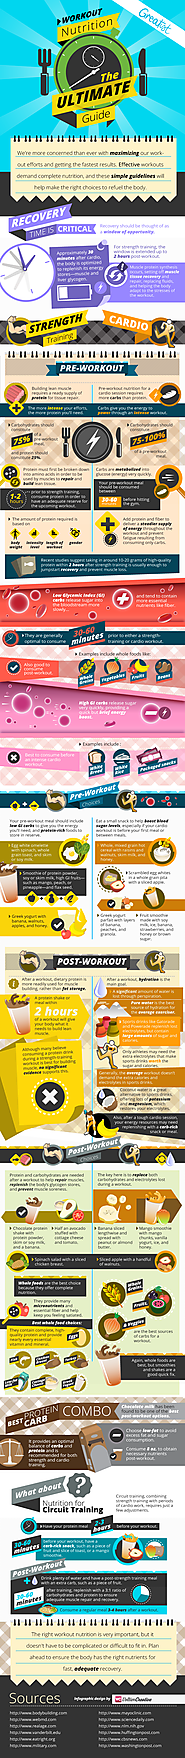 What to Eat After Workouts to Get Results You Want